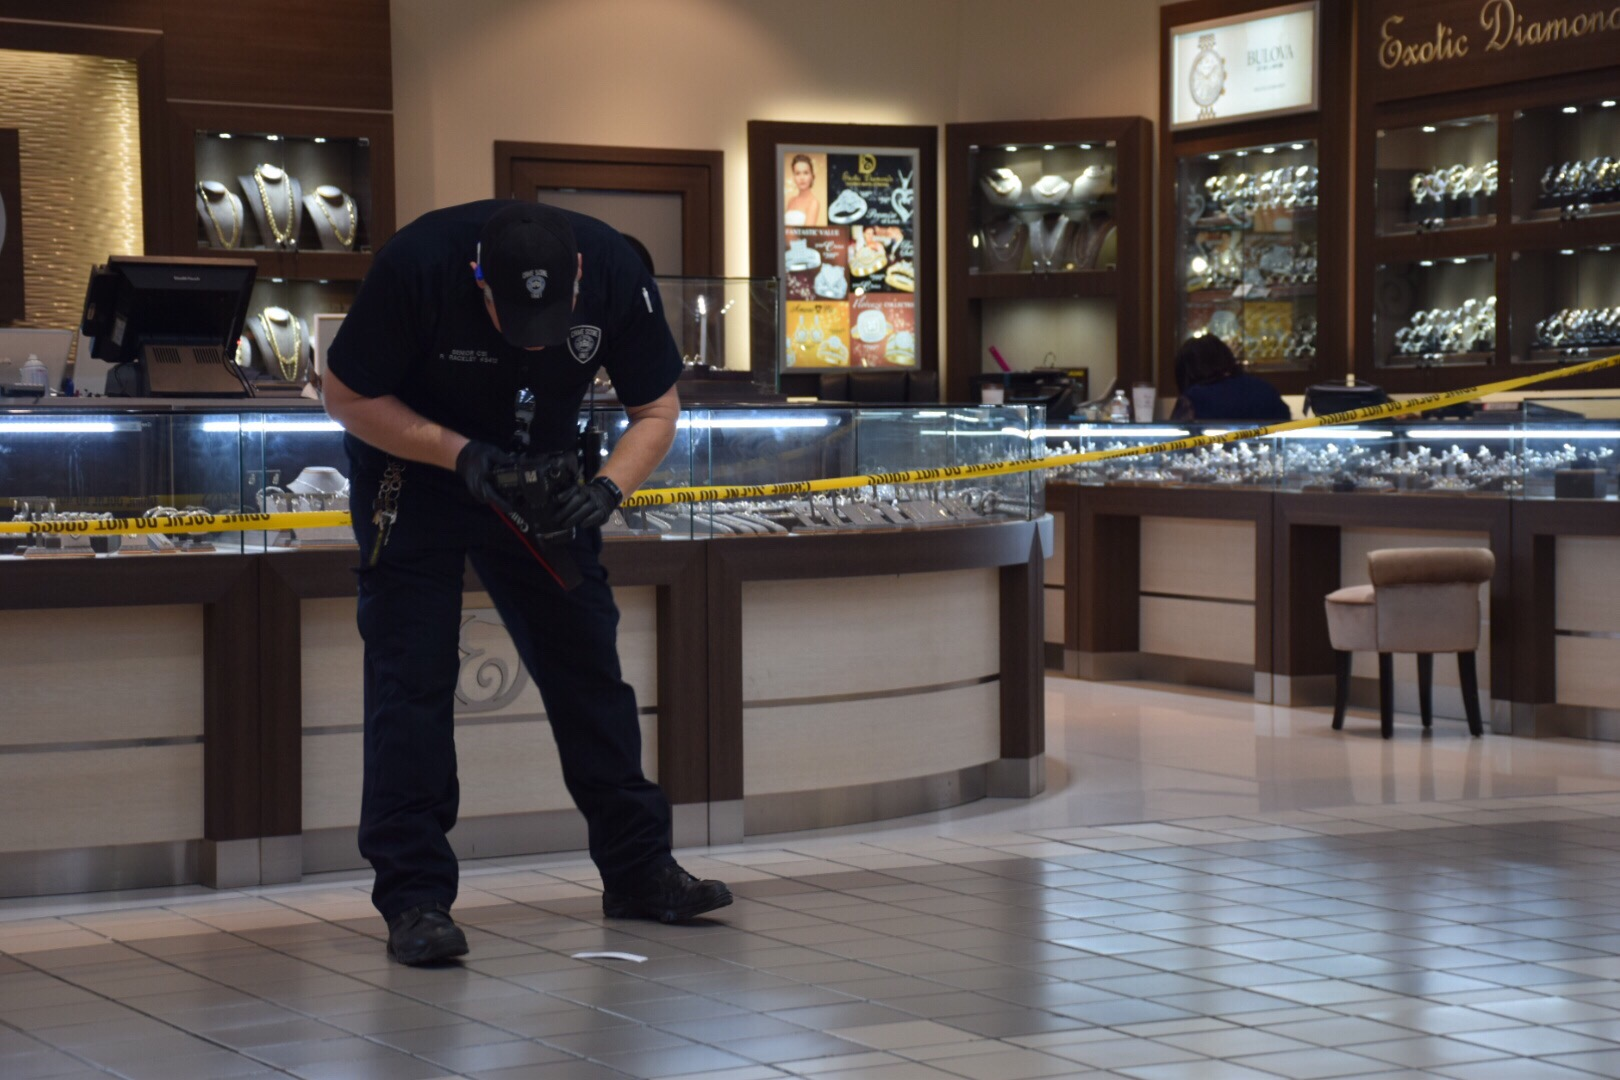 Sapd 3 Armed Men Dressed In Black Rob Diamond Store At